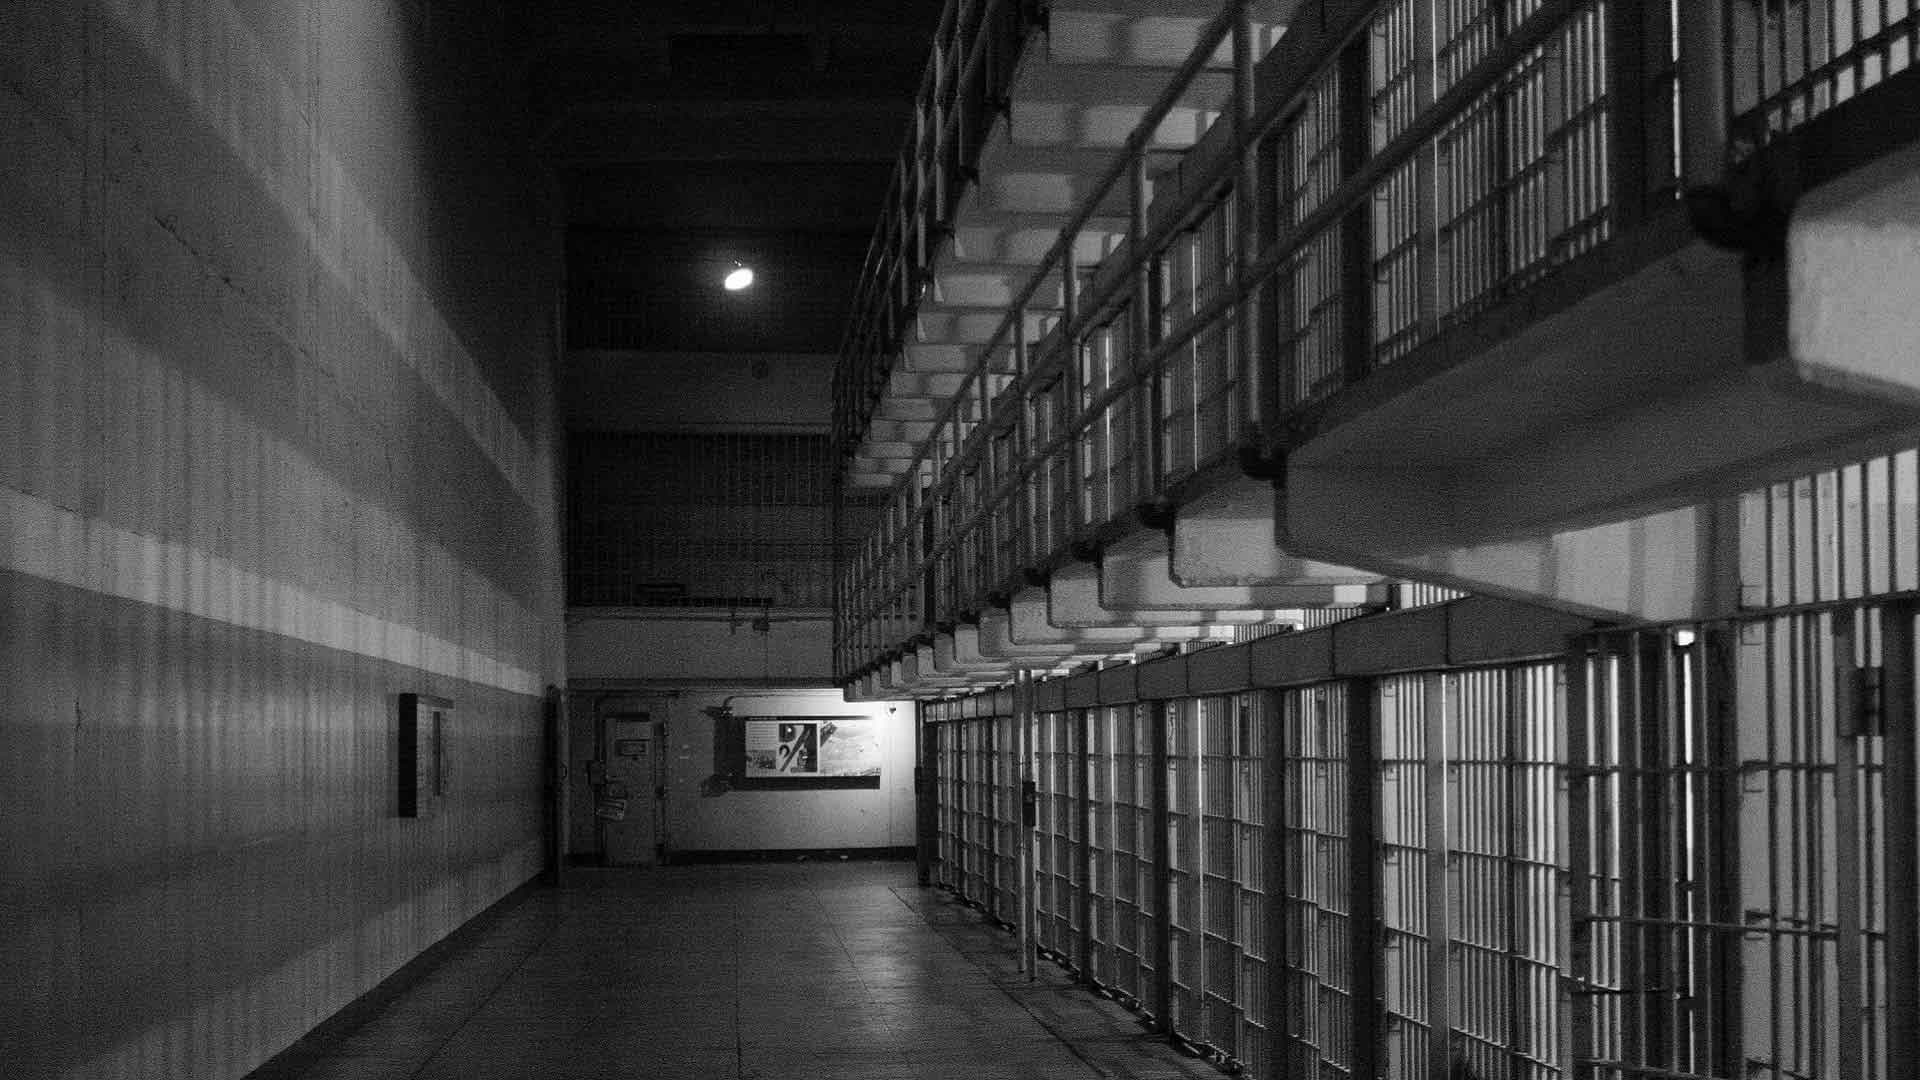 A block of cells in a prison